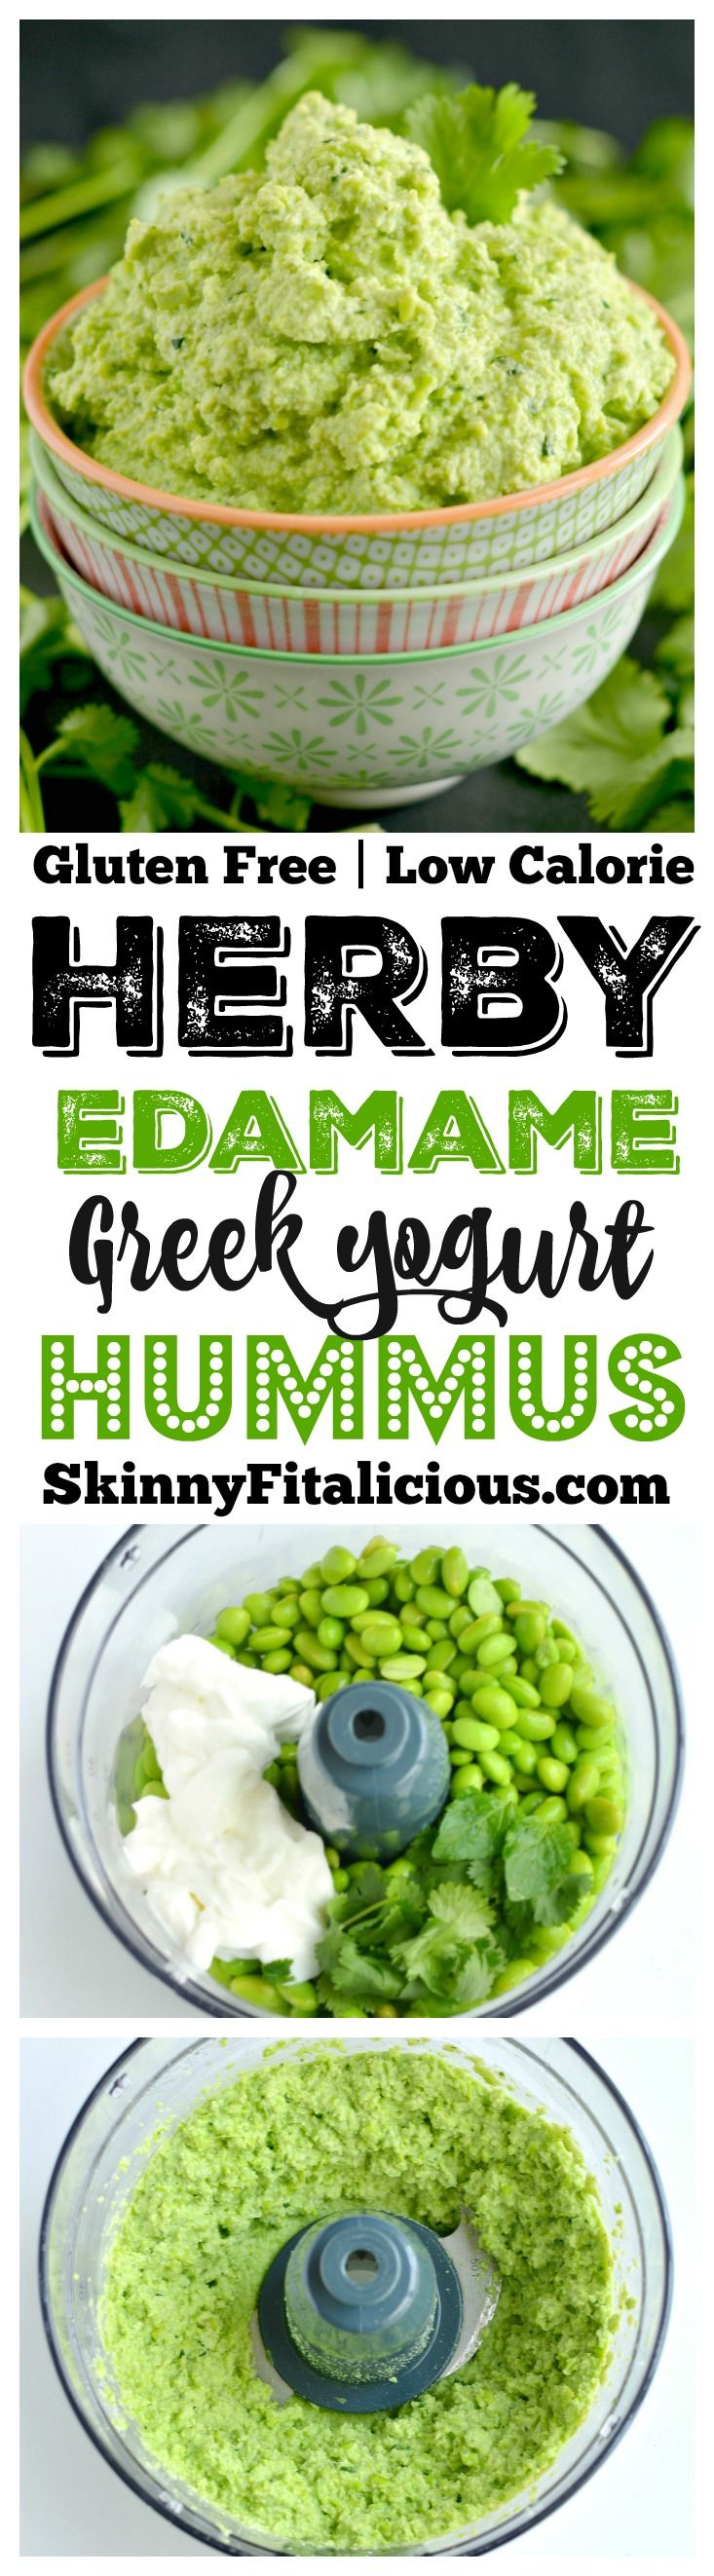 Herby Edamame Hummus made with a few ingredients in a blender, this simple hummus is layered with creamy Greek yogurt and bouncing with tangy, herby flavors of mint and cilantro. A healthy, gluten free protein packed snack for any day of the week! Gluten (food and drink blenders)